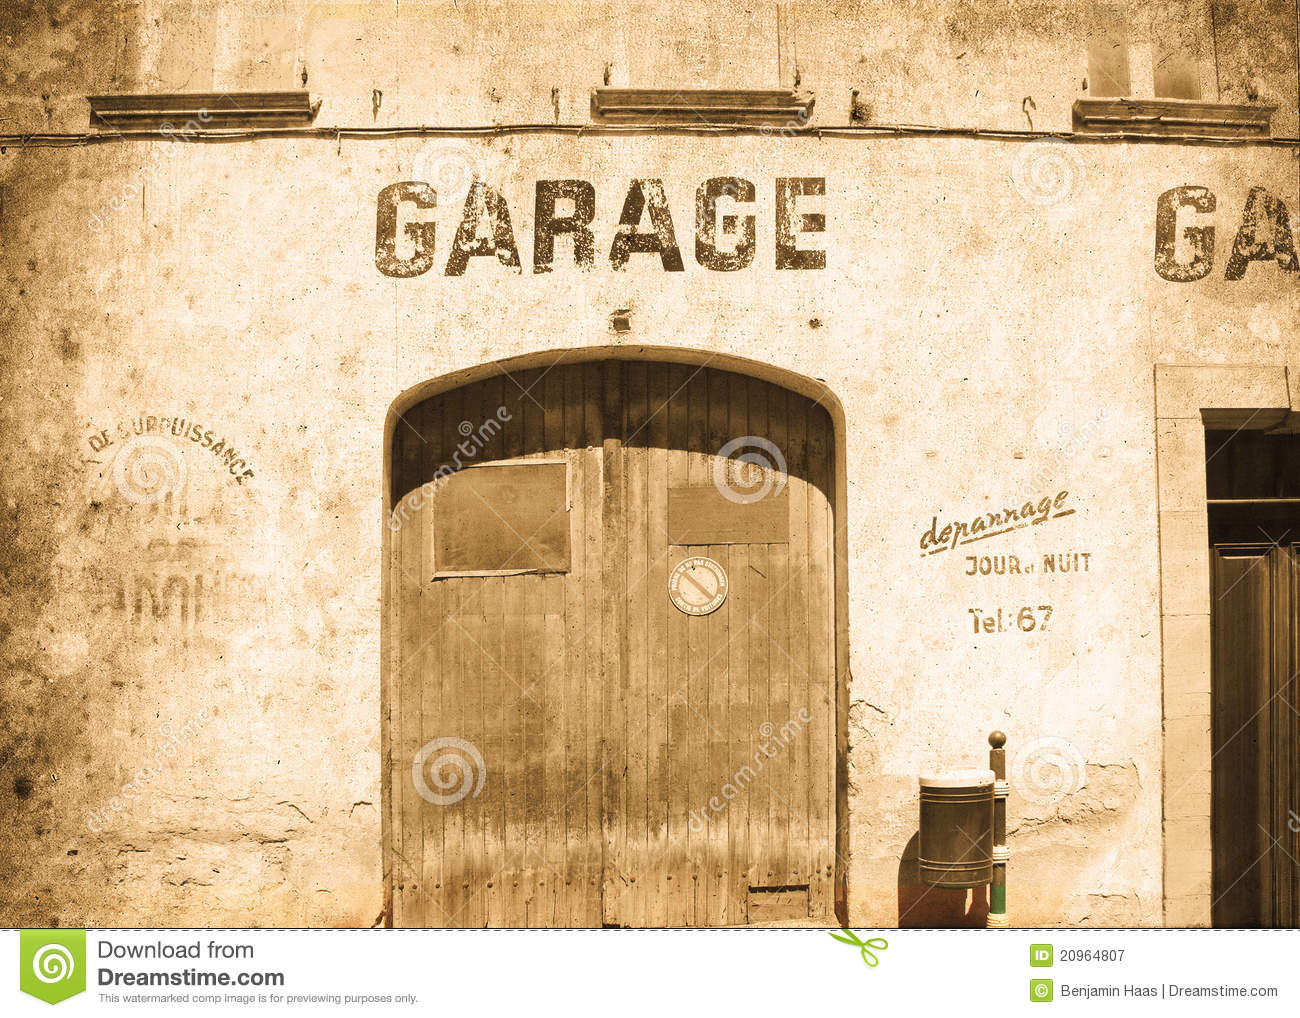 Garage House Plans >> Old Garage stock image. Image of copyspace, house, texture - 20964807